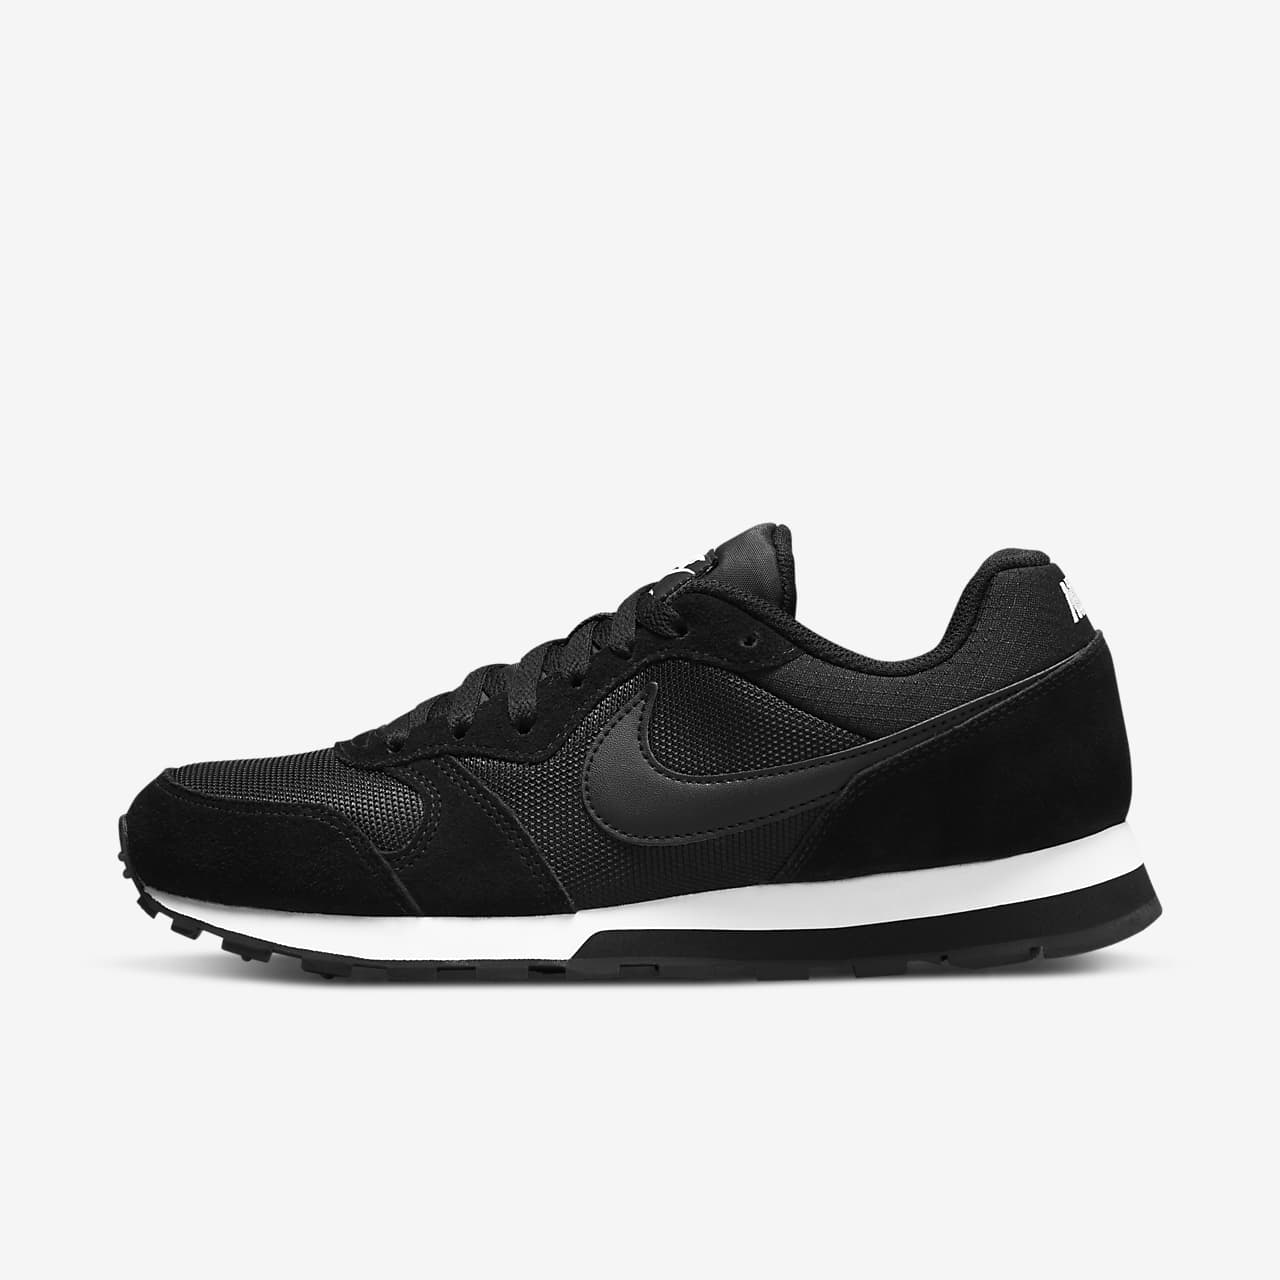 Nike Md Runner 2 EU 38